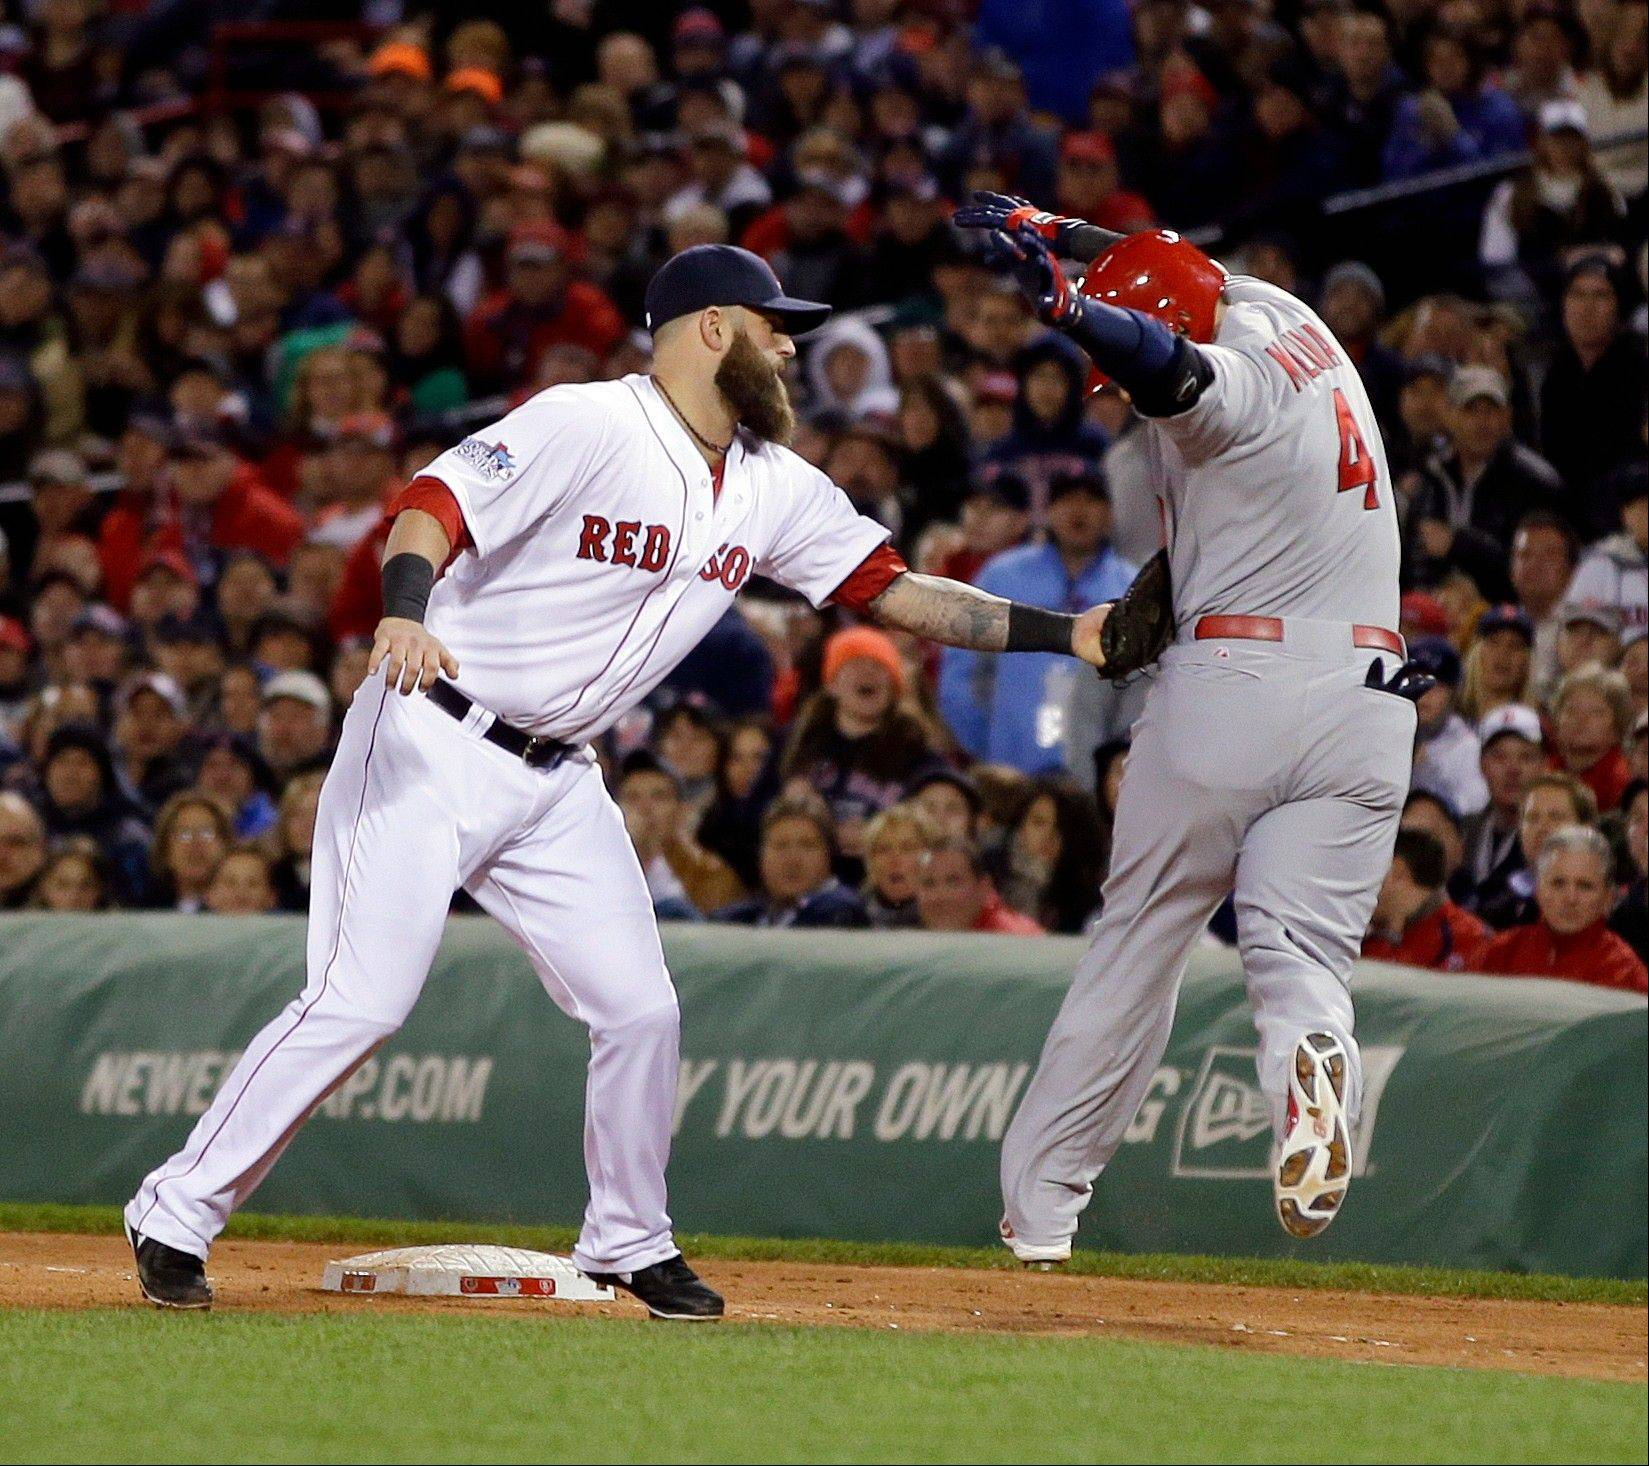 Boston's Mike Napoli tags out the Cardinals' Yadier Molina during the fourth inning.